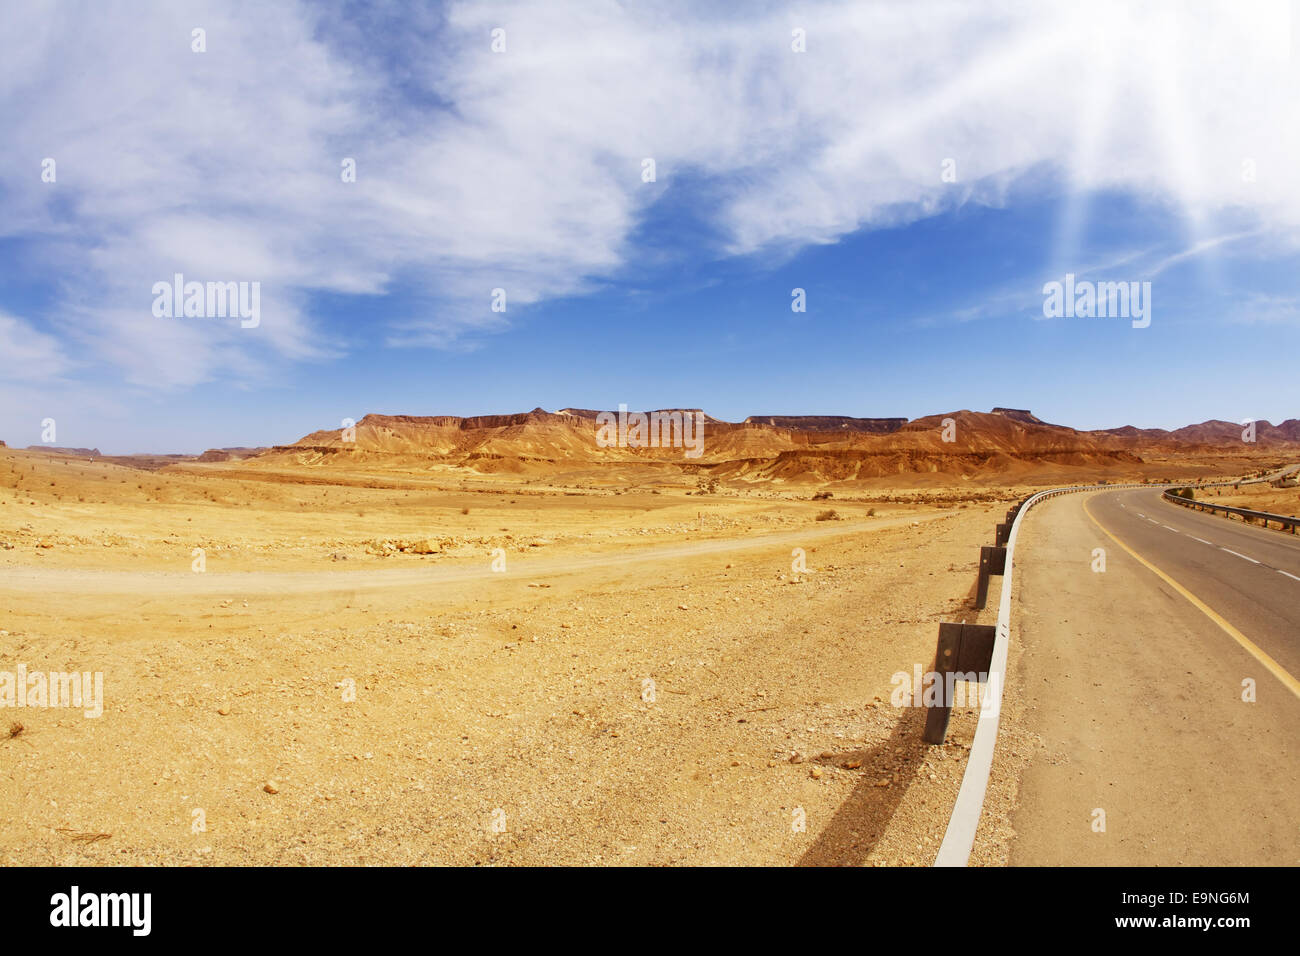 The bright sun shines empty highway - Stock Image